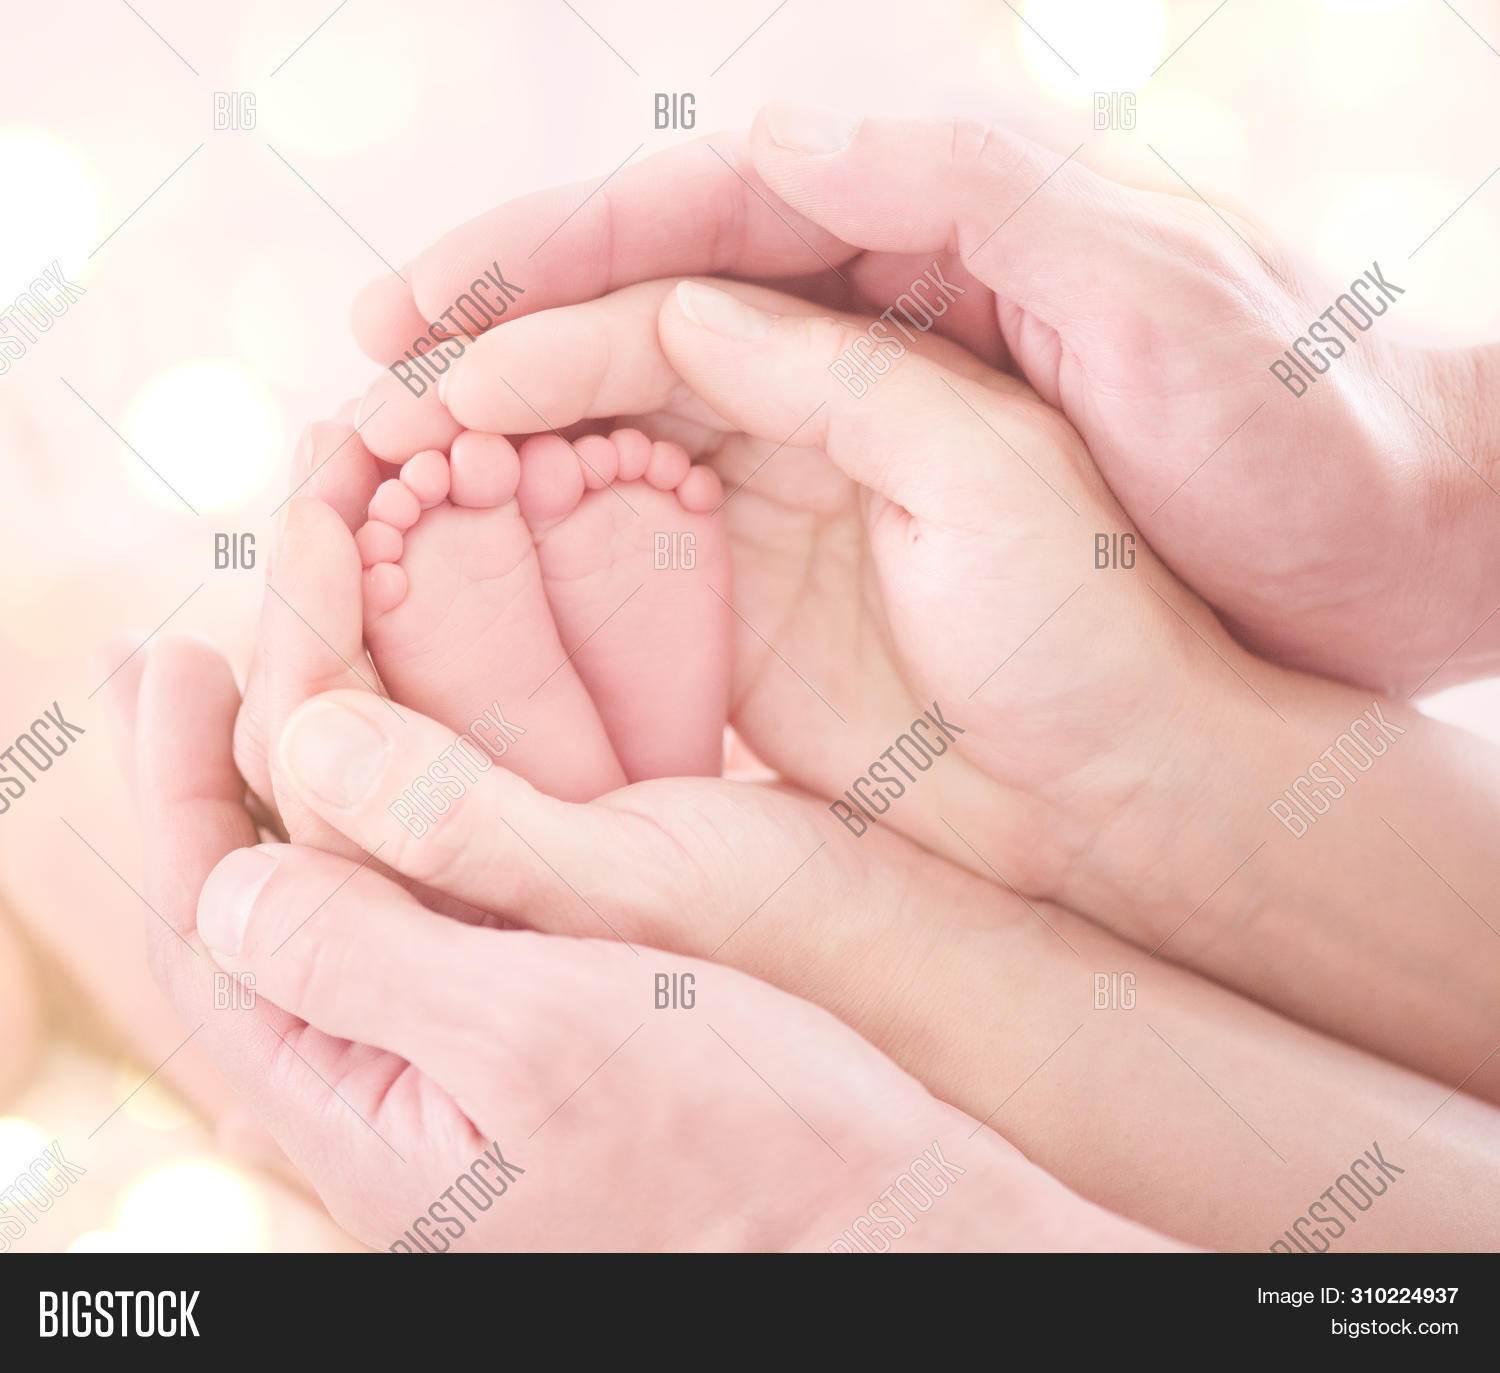 Baby Feet Mother Image Photo Free Trial Bigstock